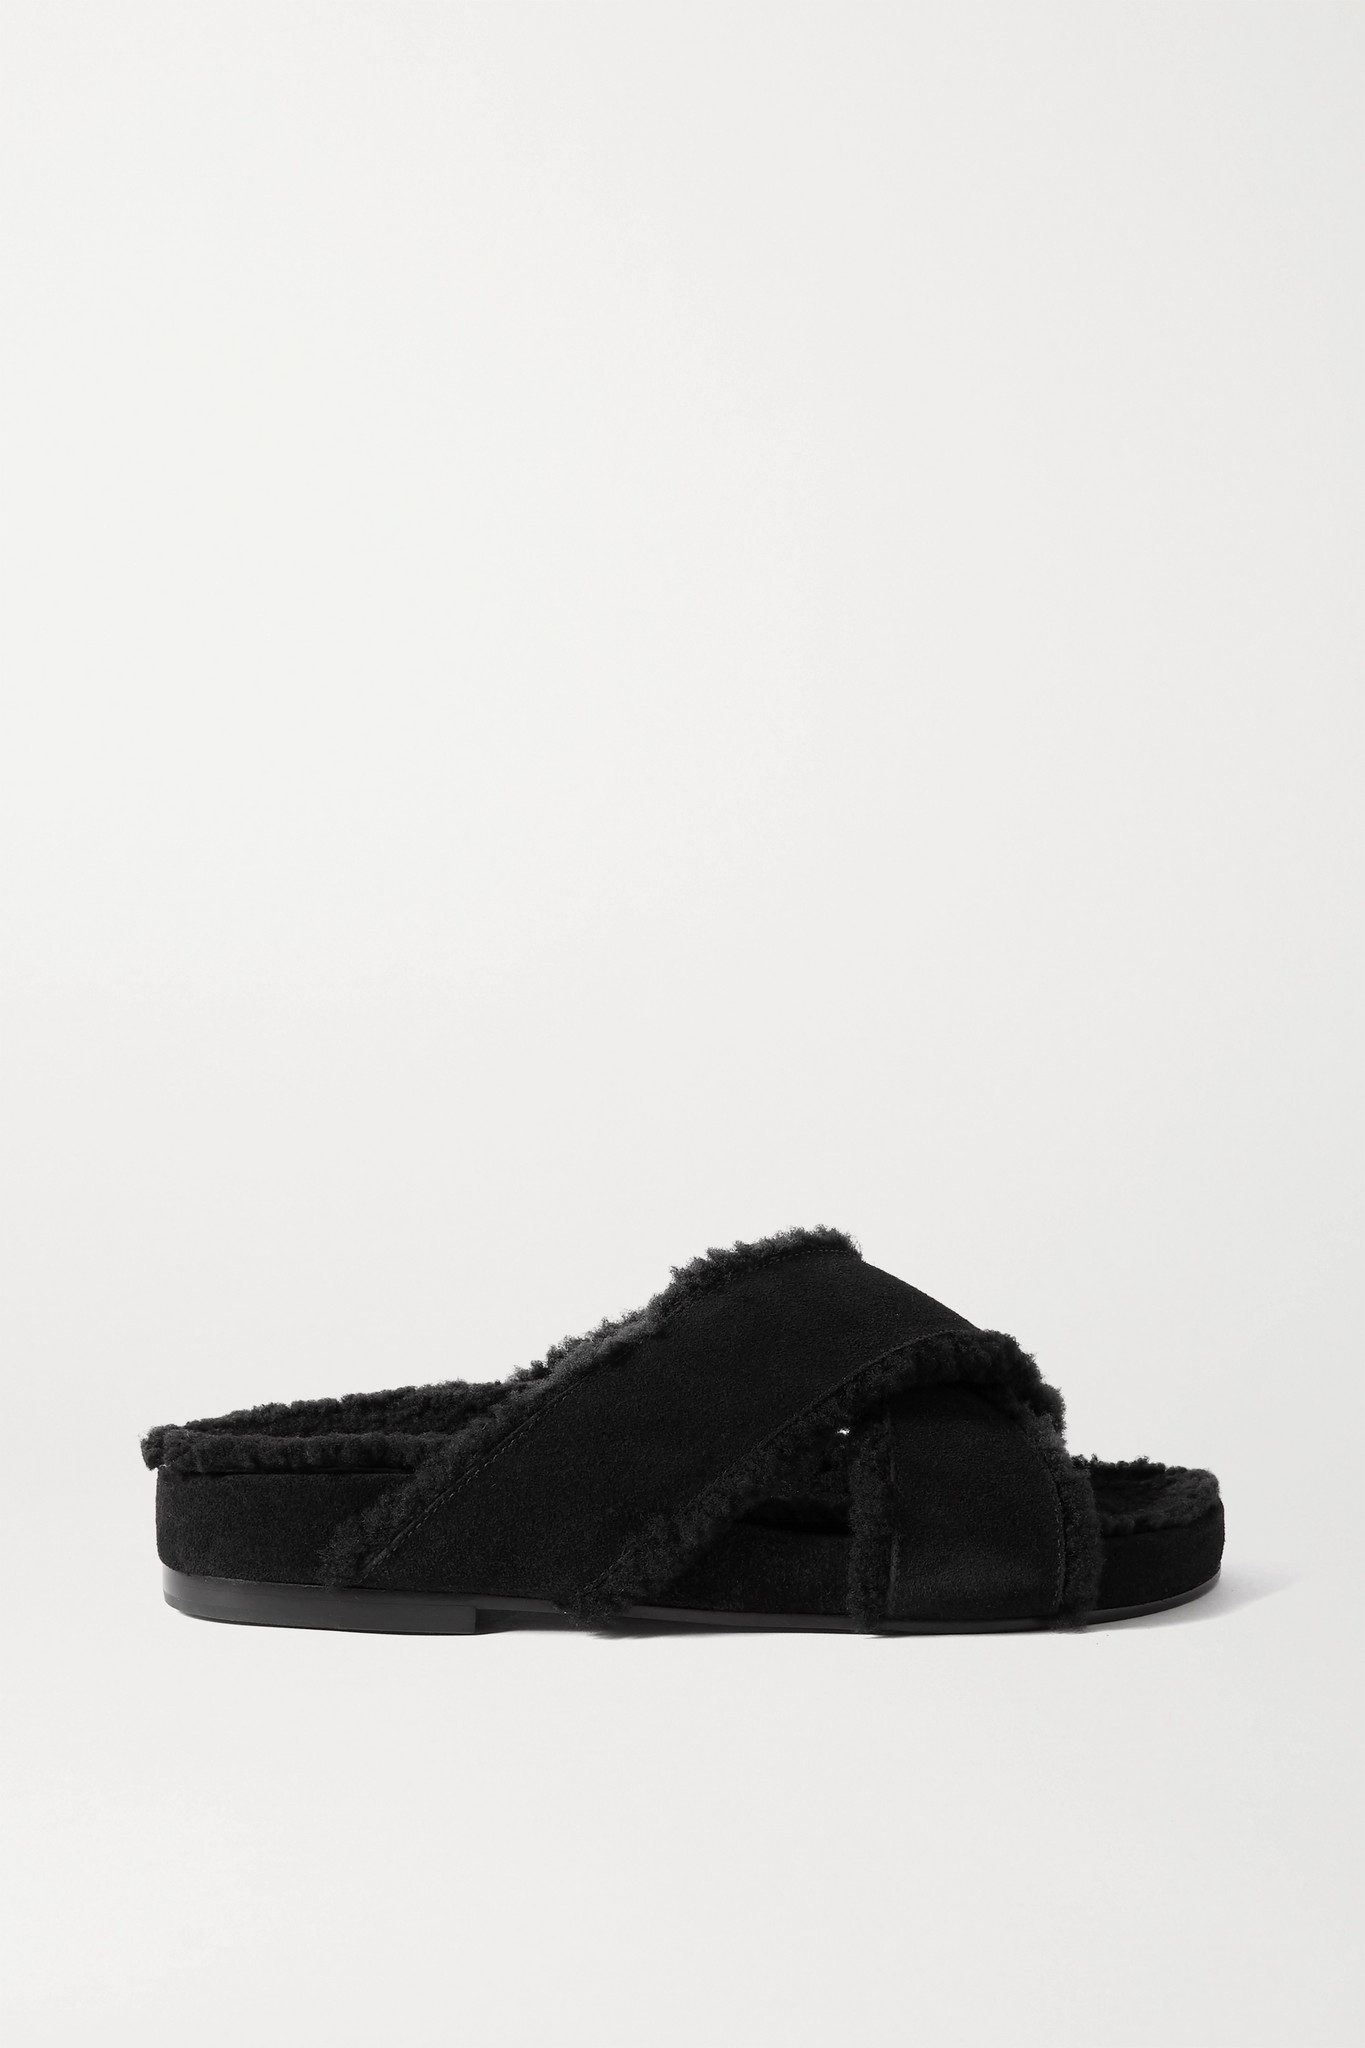 PORTE & PAIRE - Shearling-lined Suede Slides - Black - IT35.5